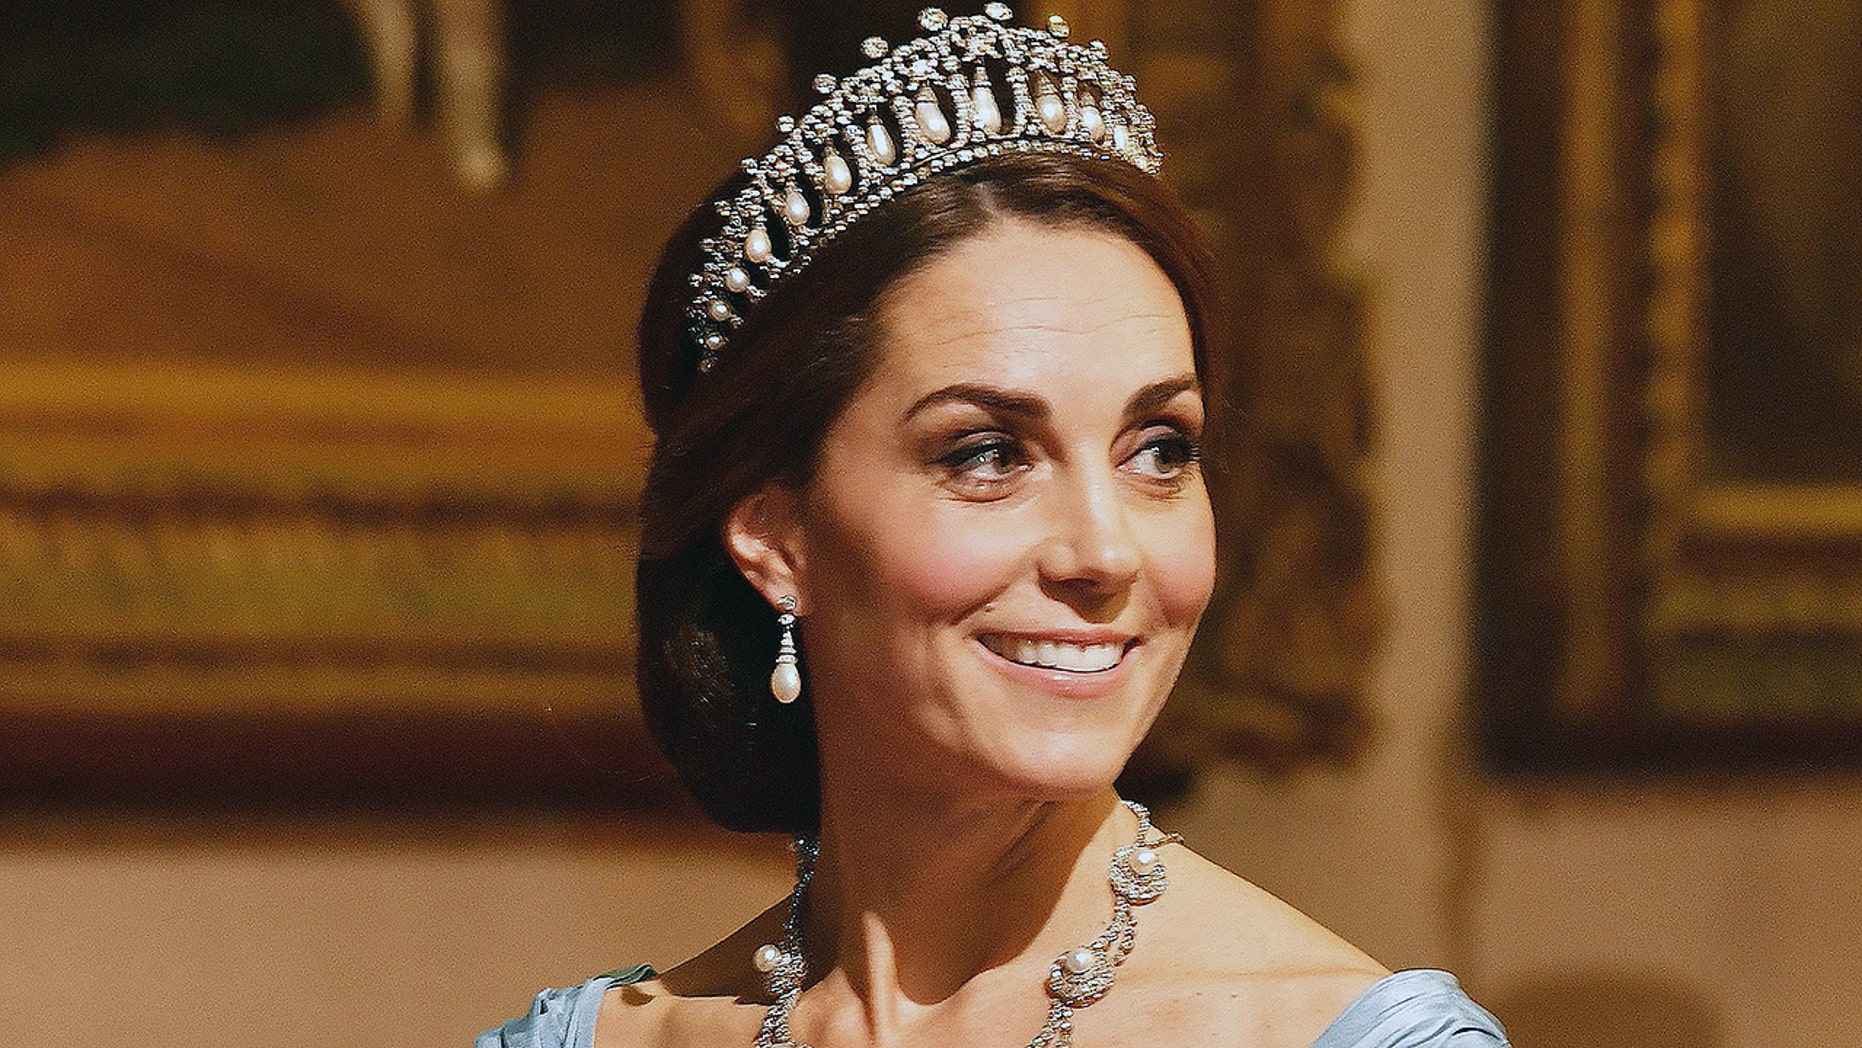 Kate Middleton at a state banquet in honor of King Willem-Alexander and Queen Maxima of the Netherlands in October 2018.